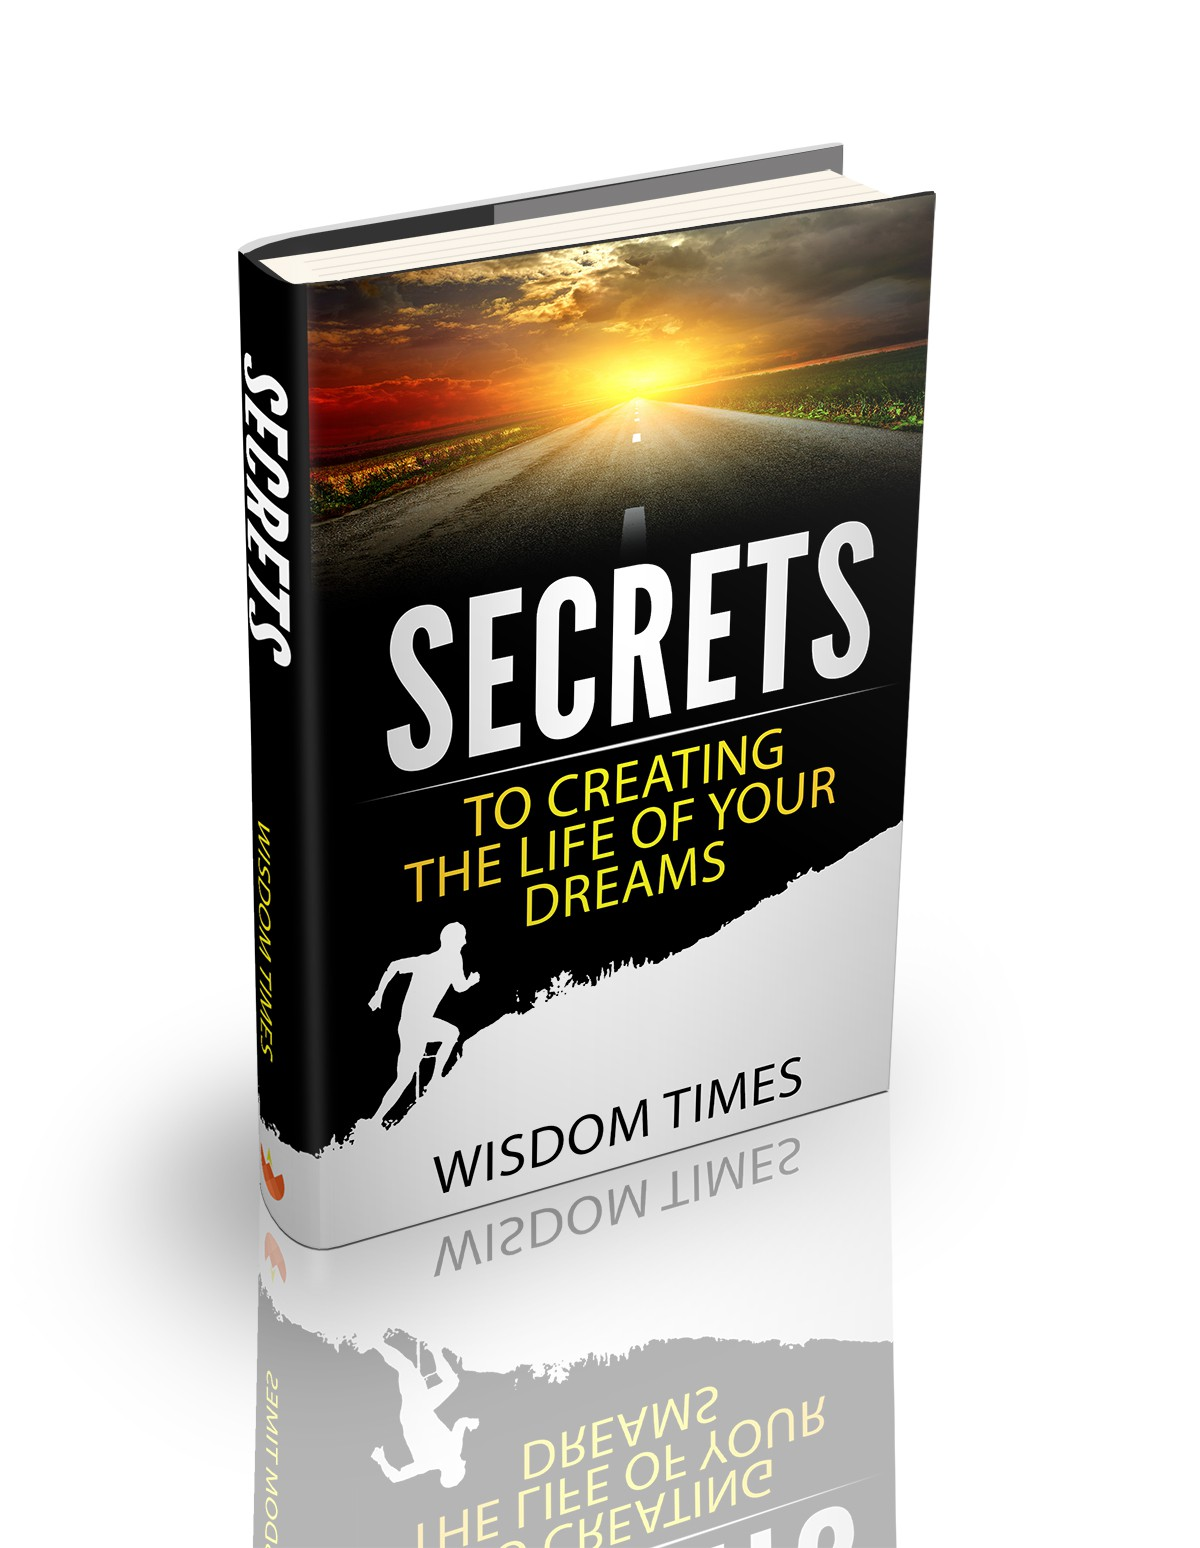 Ebook Cover Design for Personal Growth ebook